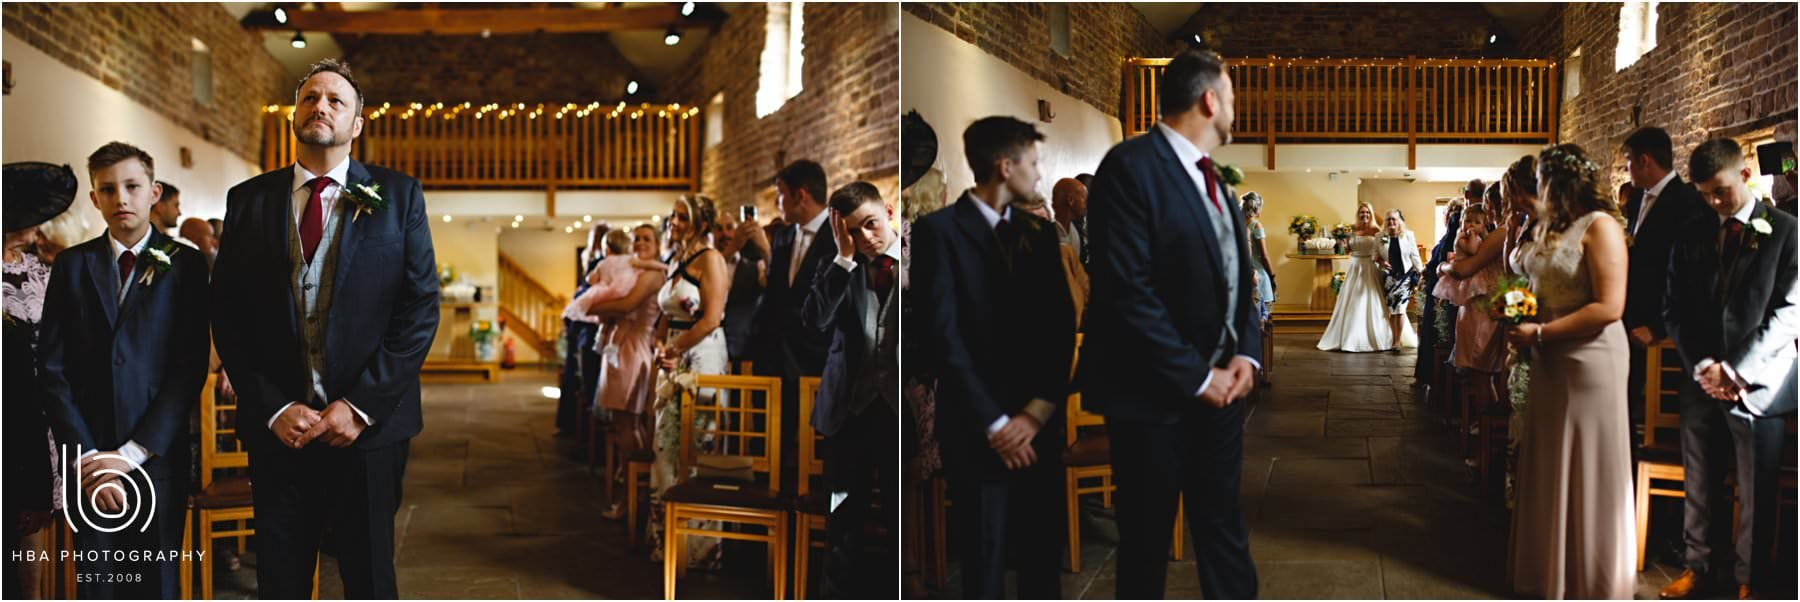 the wedding ceremony in the west barn